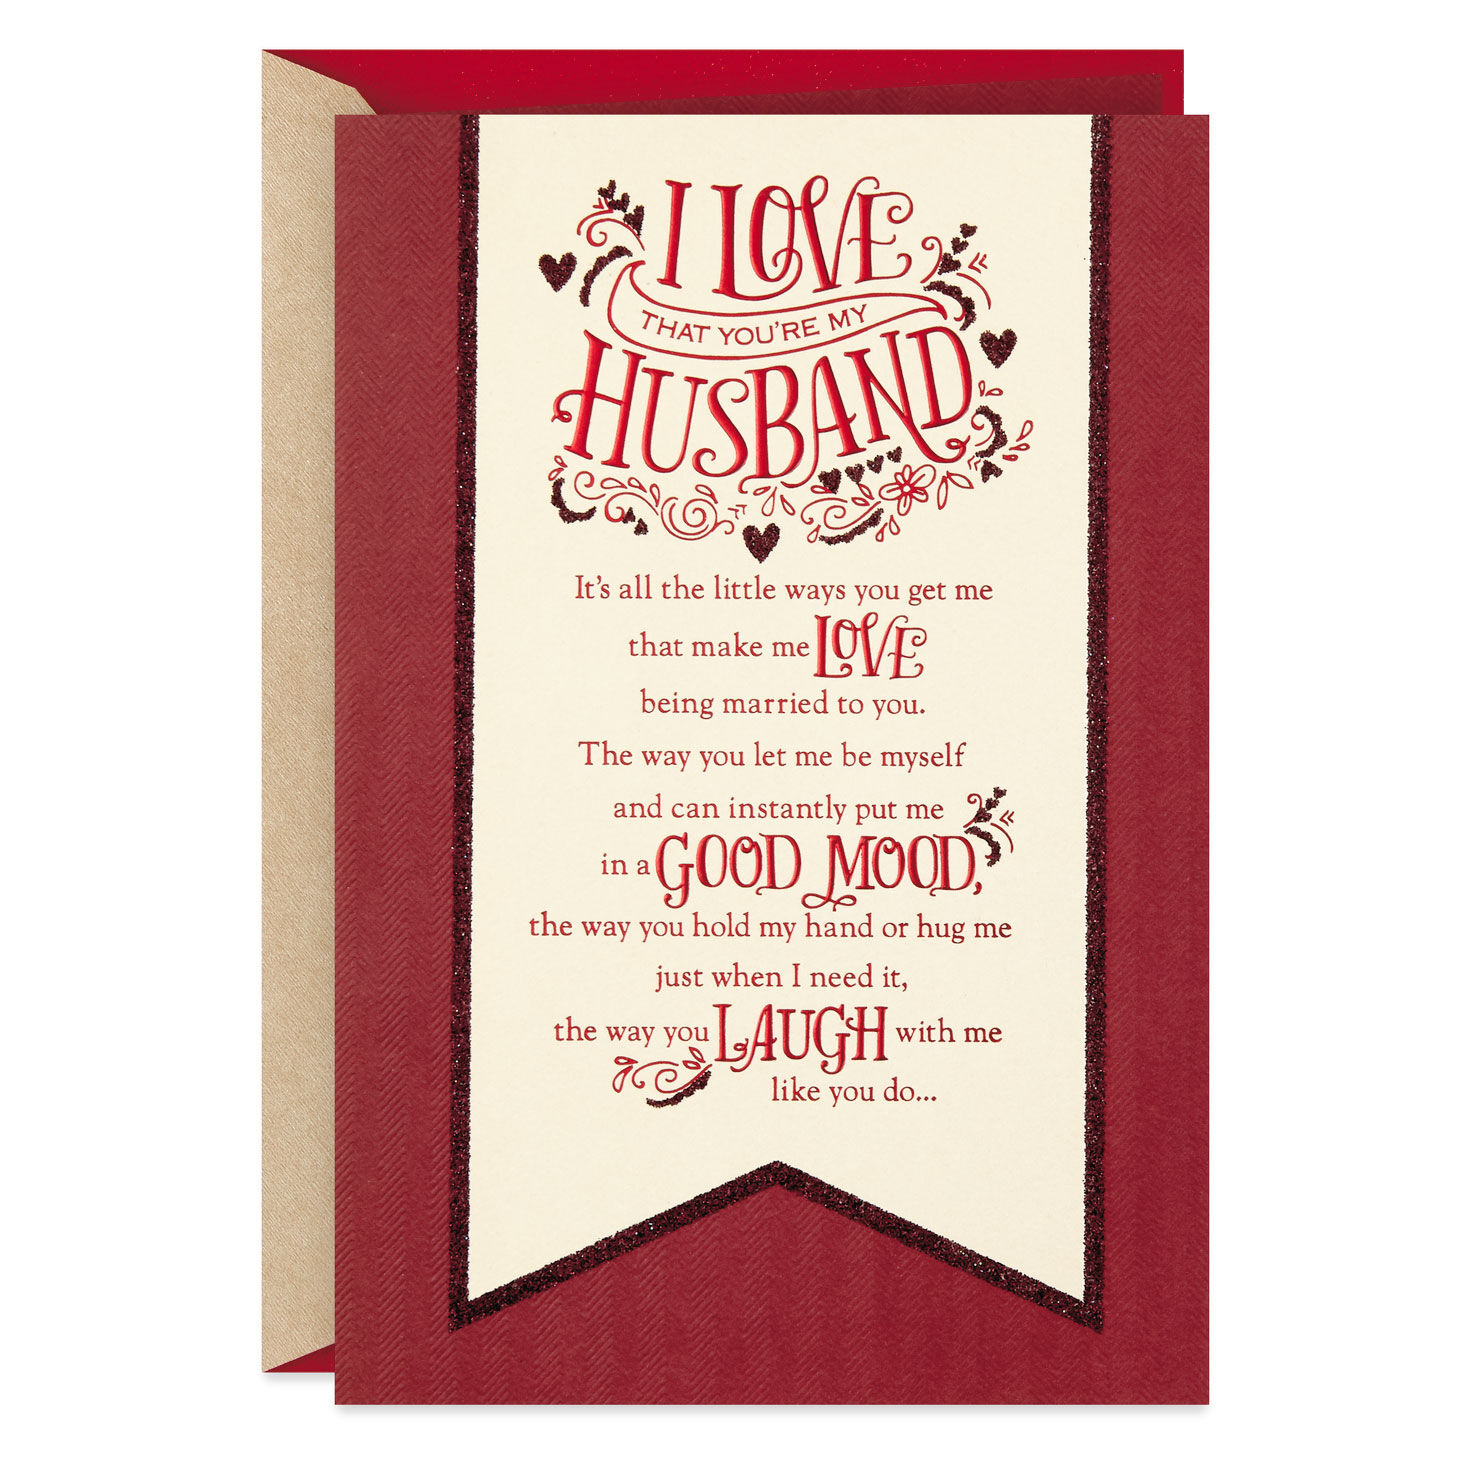 photograph regarding Sweetest Day Cards Printable identified as Sweetest Working day Playing cards Hallmark